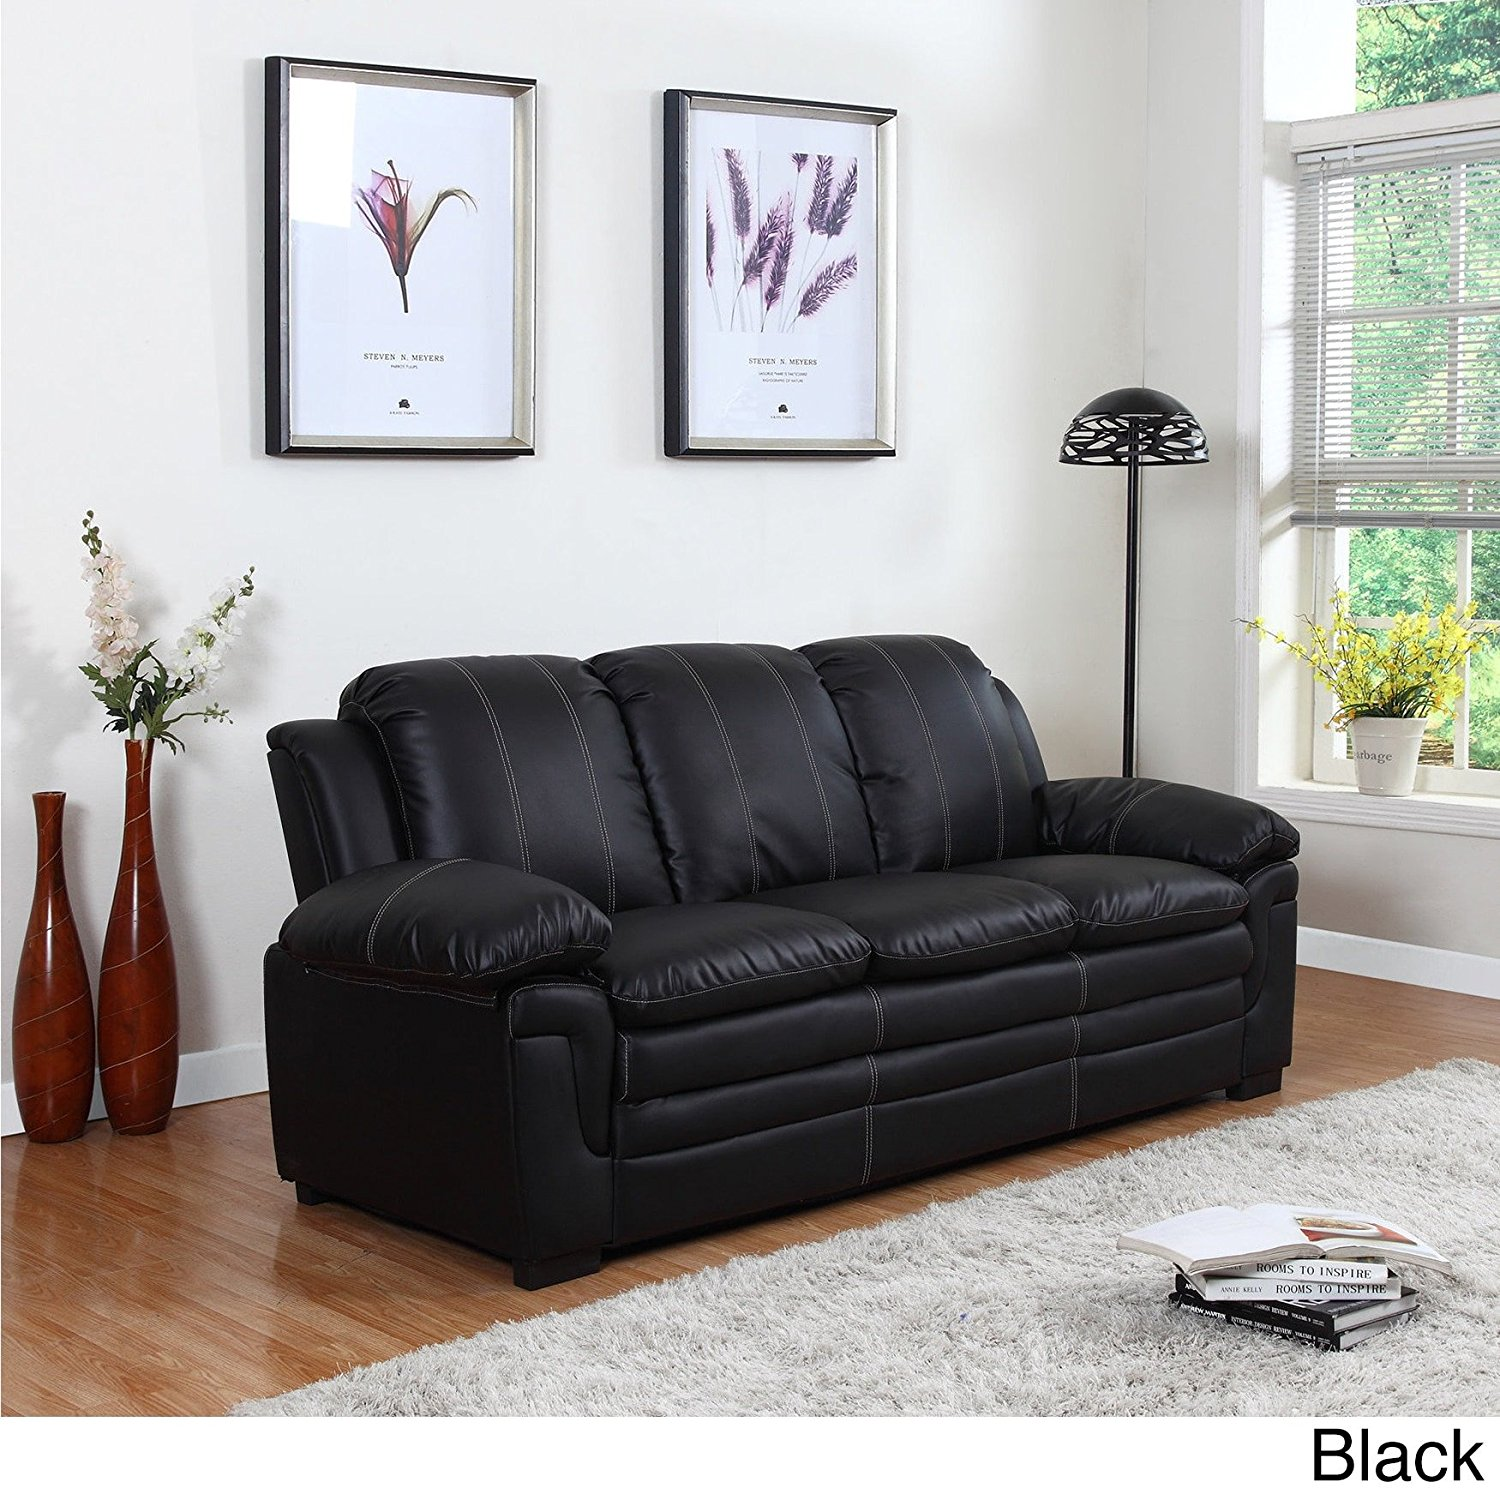 Black Living Room Furniture: Awesome Black Living Room Furniture Set